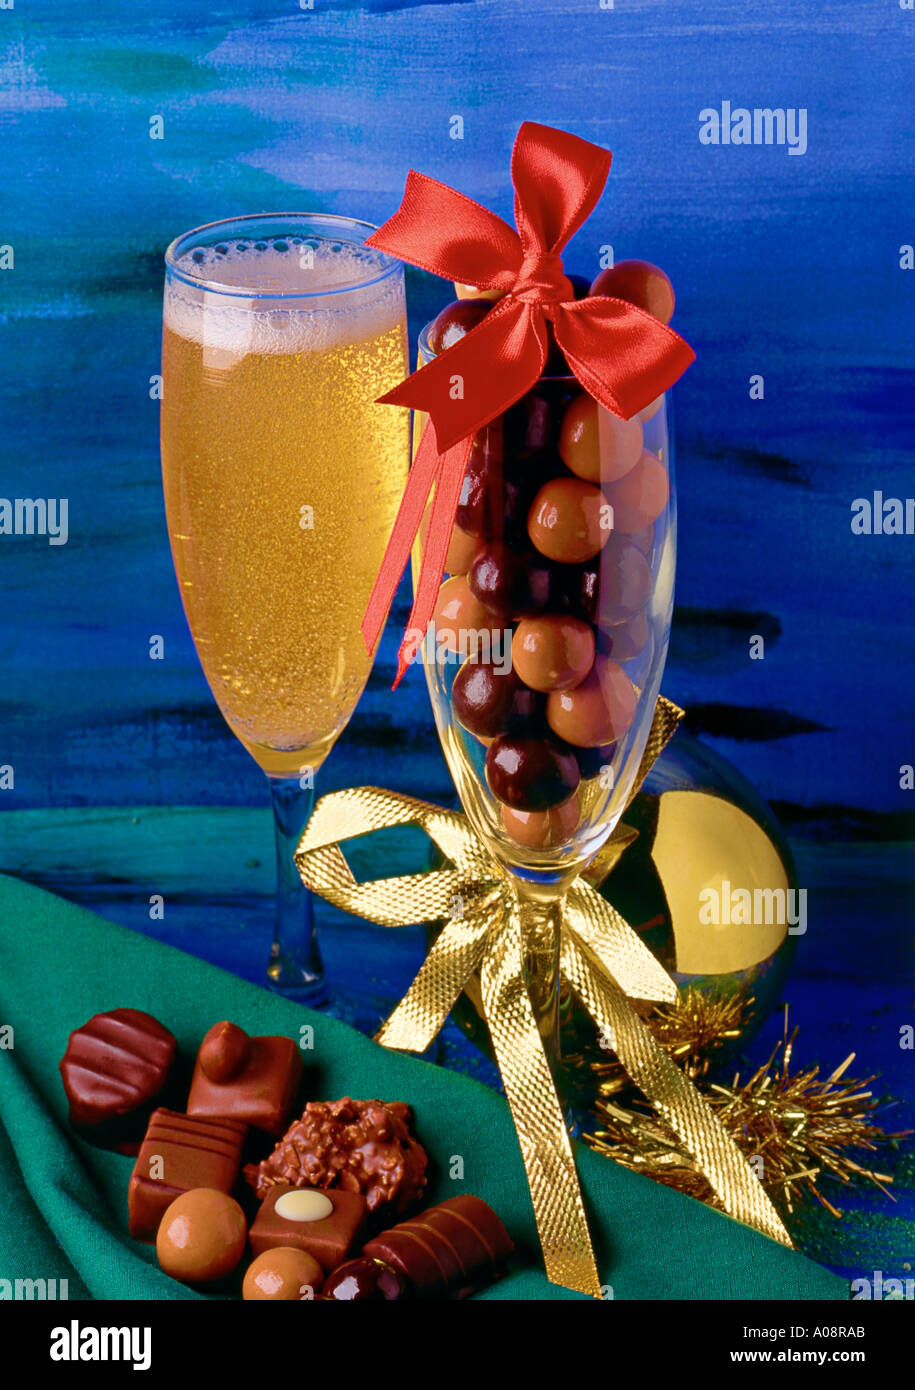 Chocolates  & Champaign with Christmas decorations - Stock Image